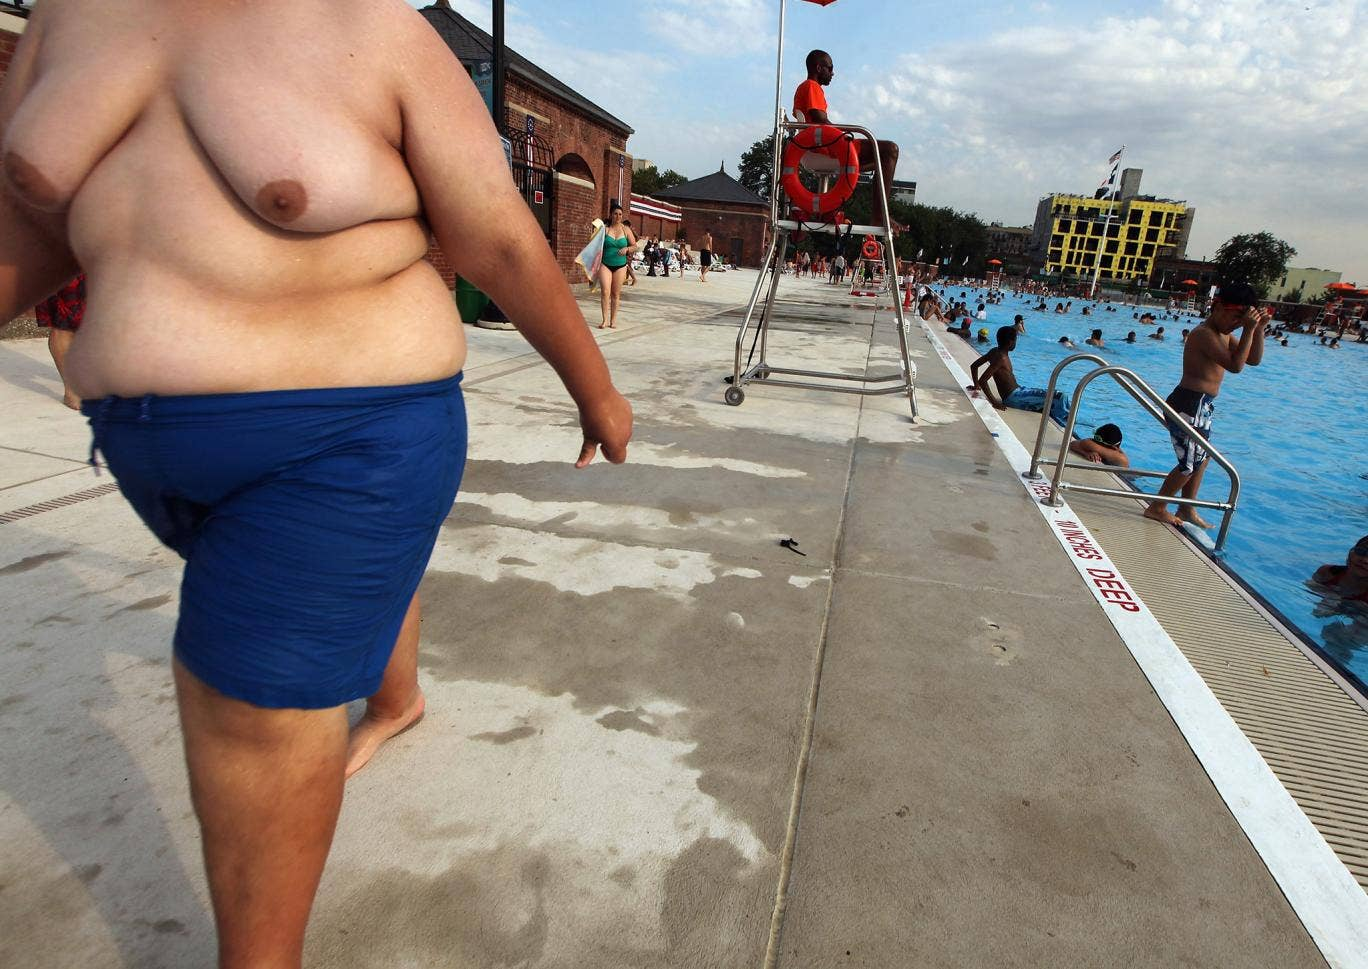 An obese man cools off by a pool